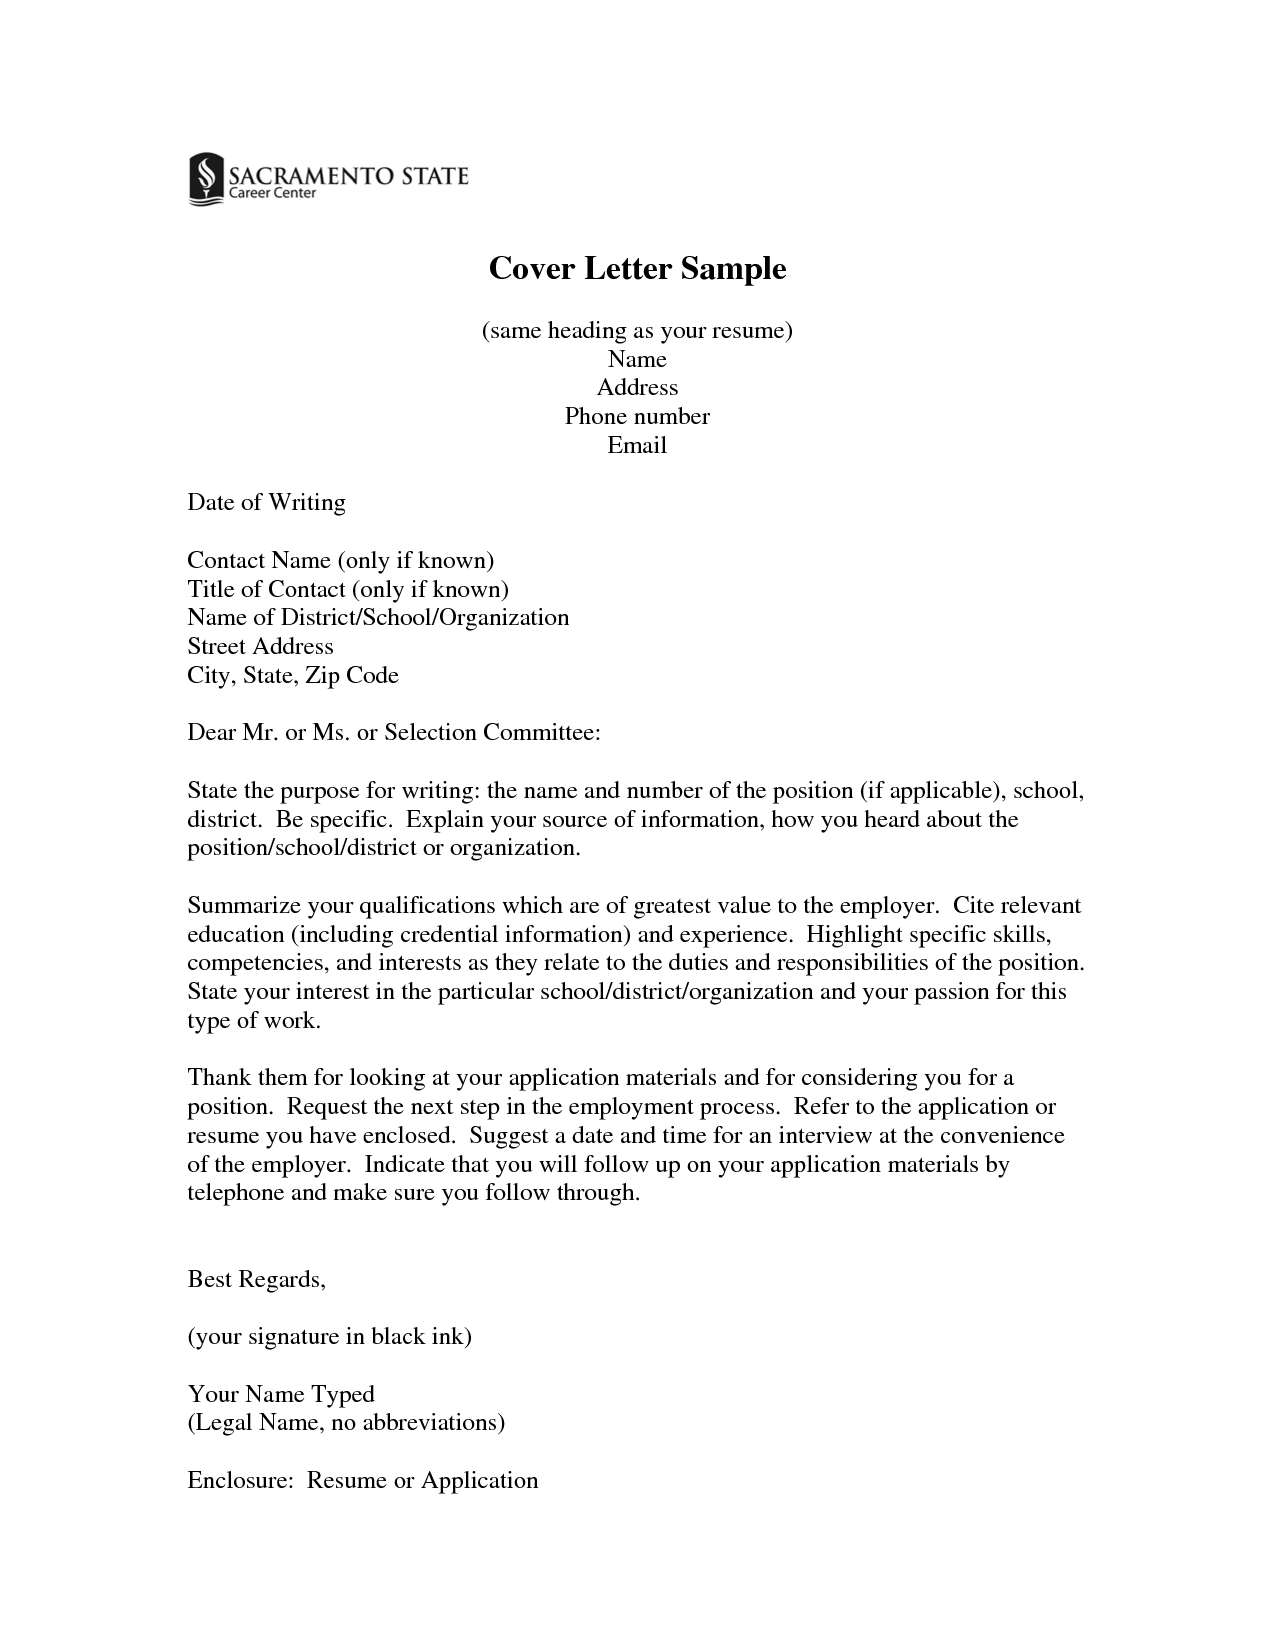 Sample Cover Letter No Contact Name Available Heading Name. Resume ...